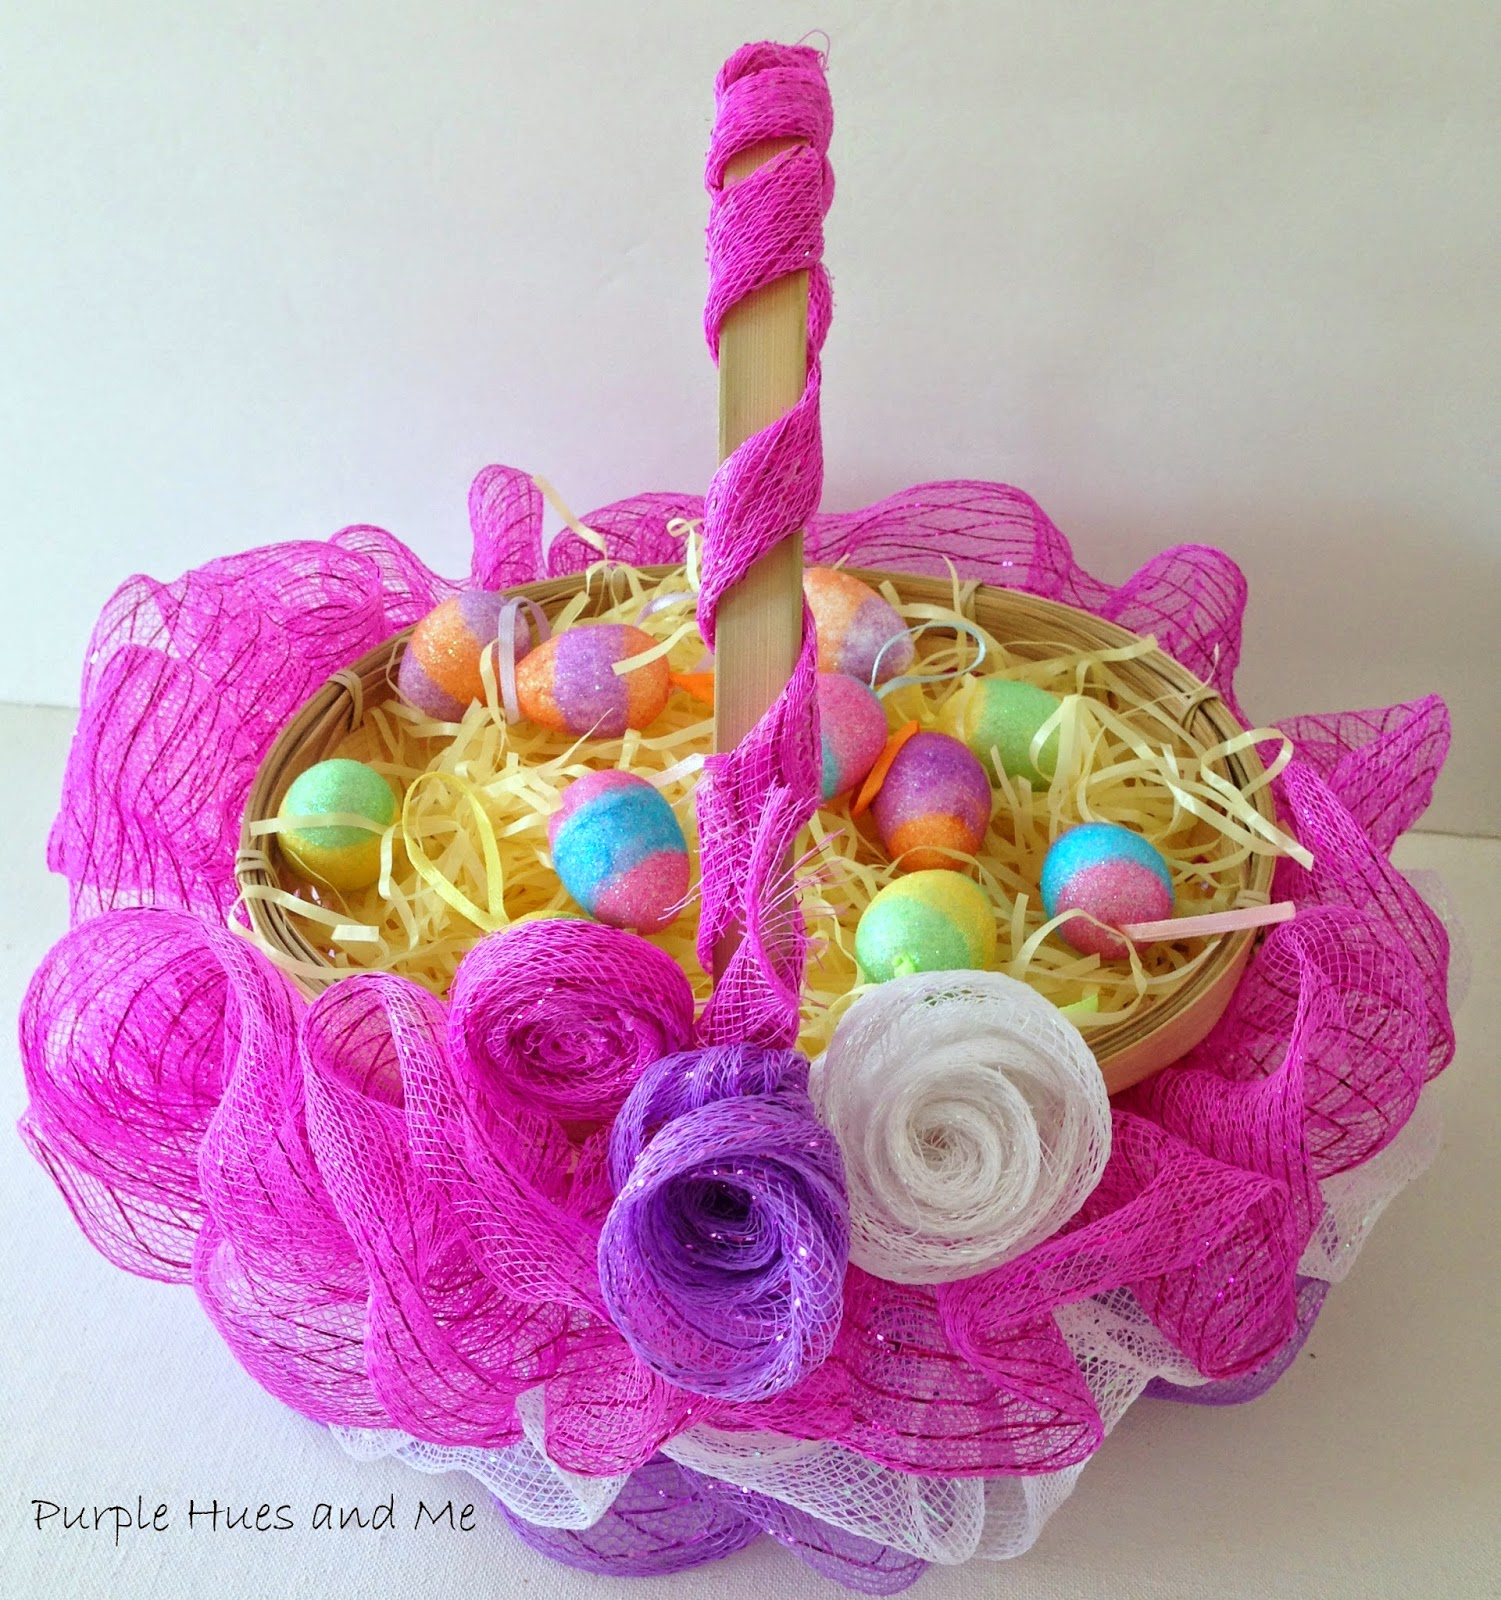 Diy Easter Decorating Ideas: -Crafting, DIY, Projects, Decorating